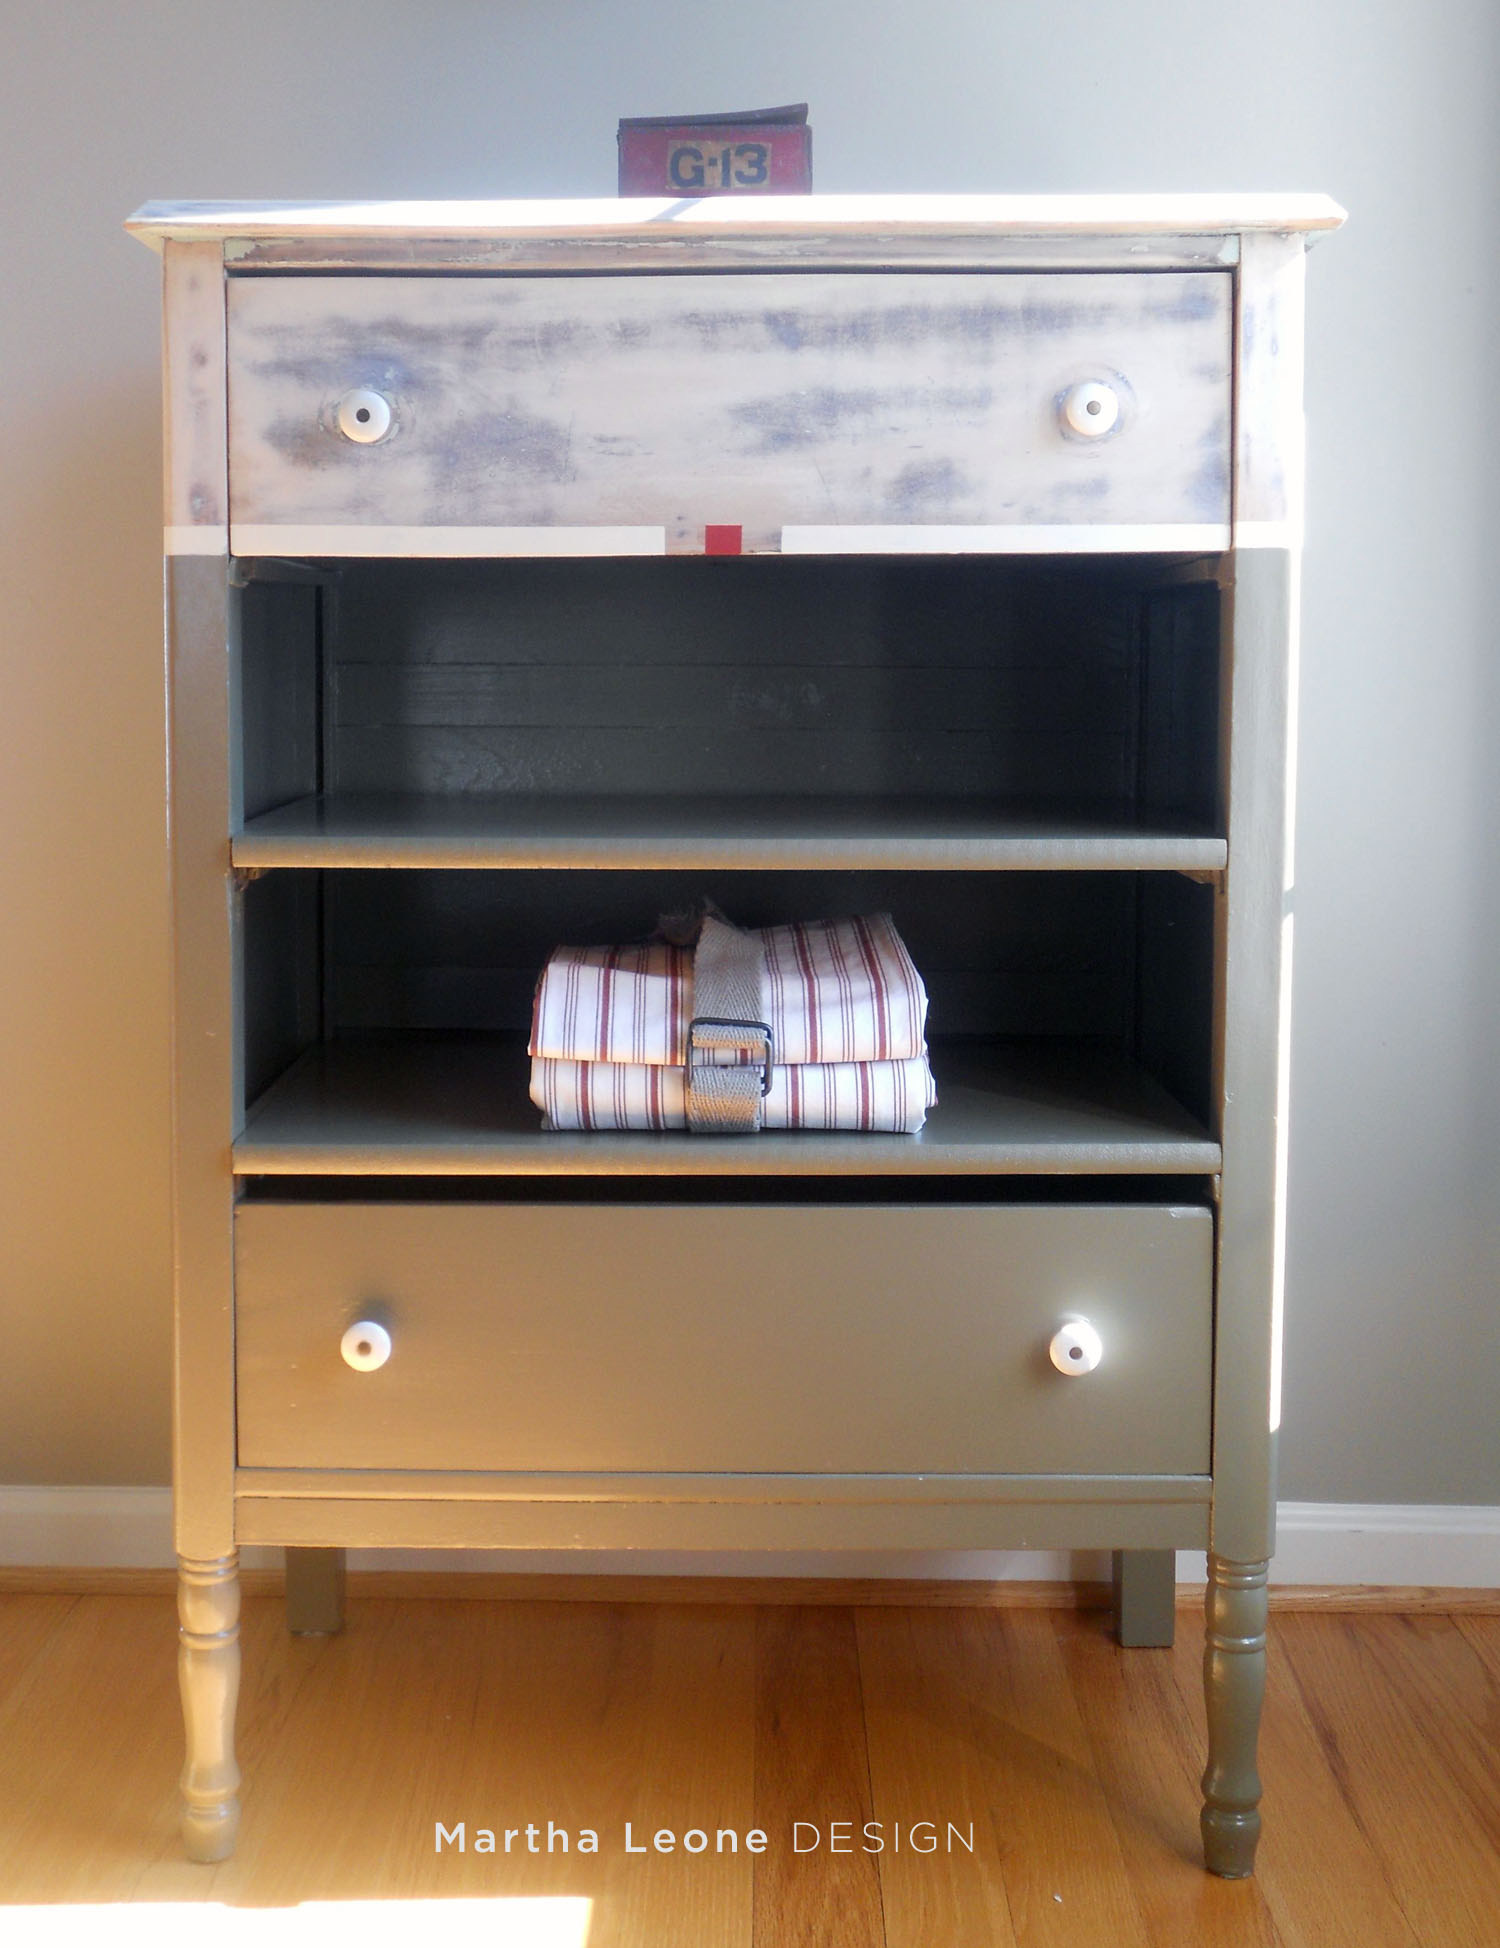 Army Dresser 5 at MarthaLeoneDesign